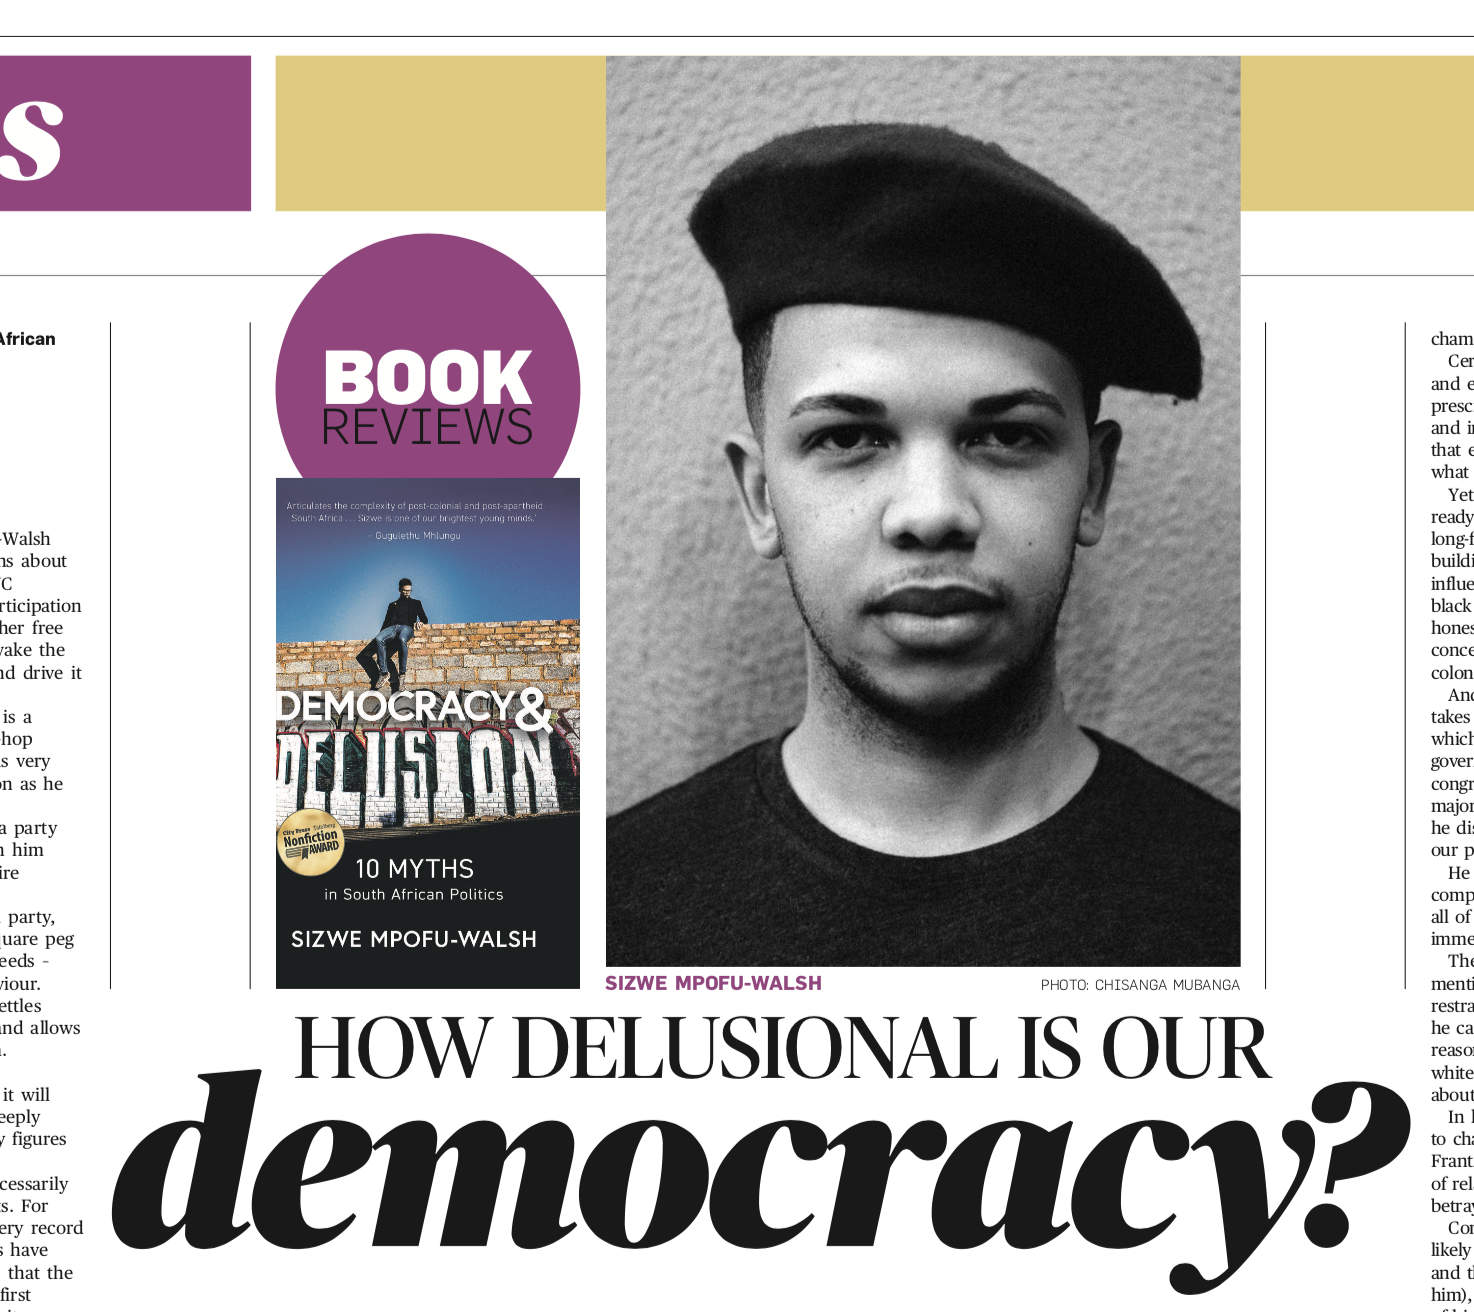 Book Review: Democracy and Delusion by Sizwe Mpofu-Walsh